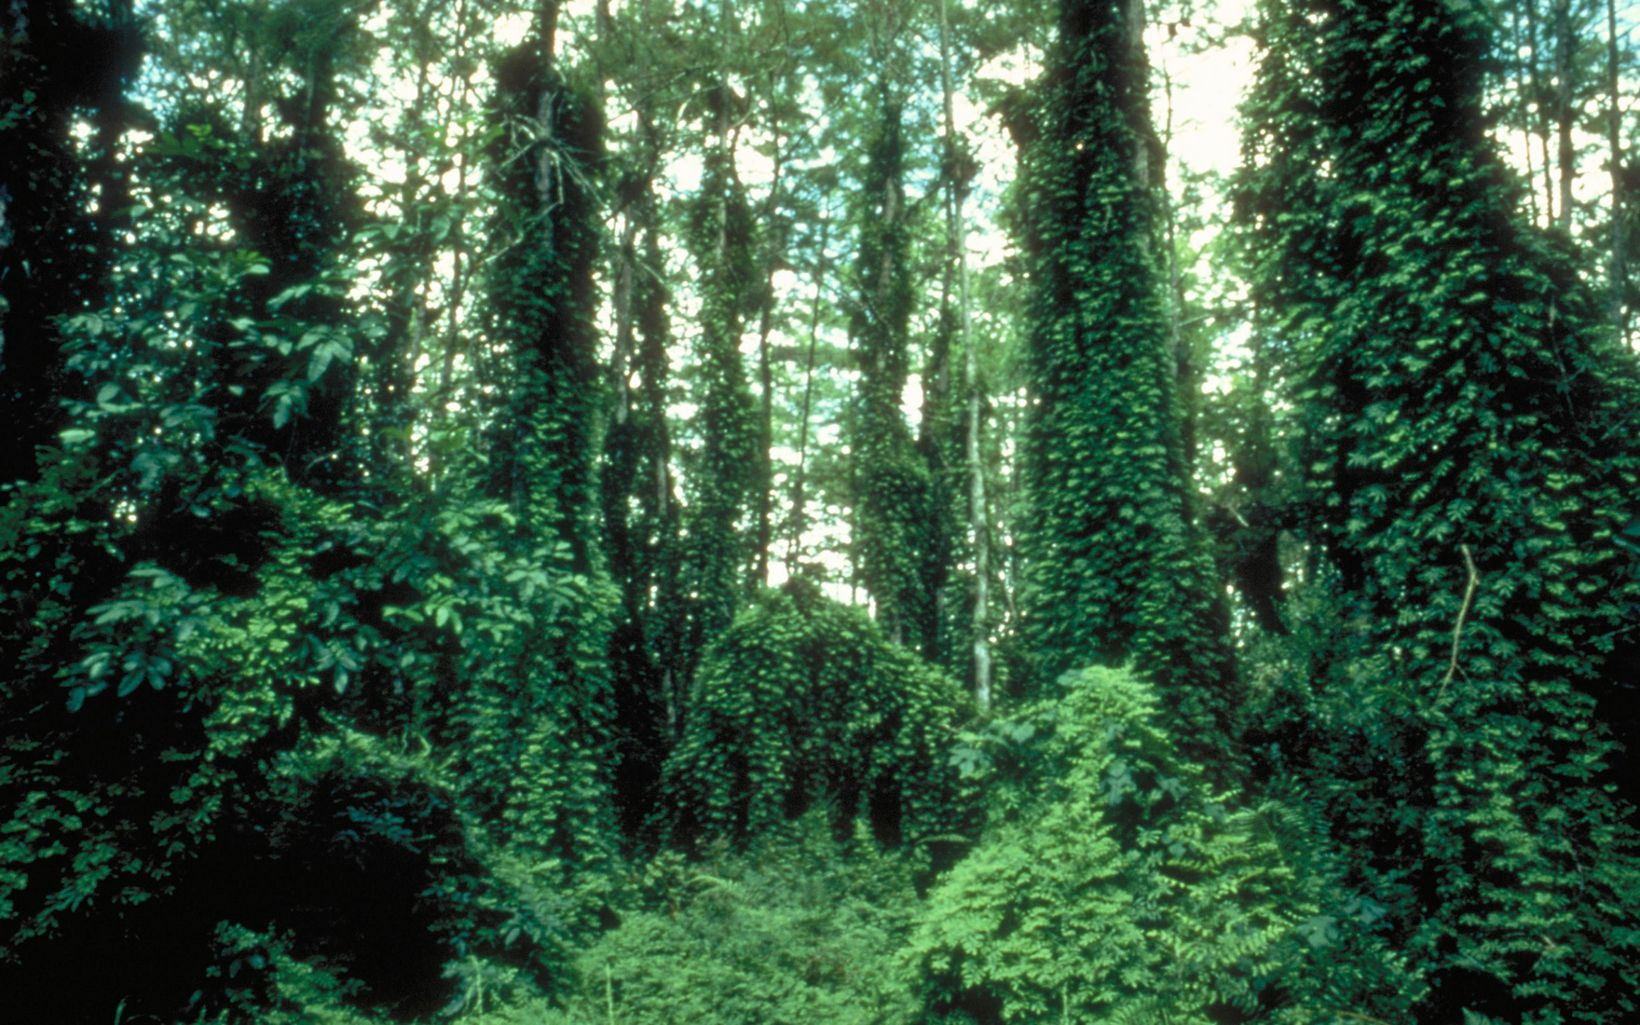 A forest with trees covered thickly with lygodium ferns smothering their branches.